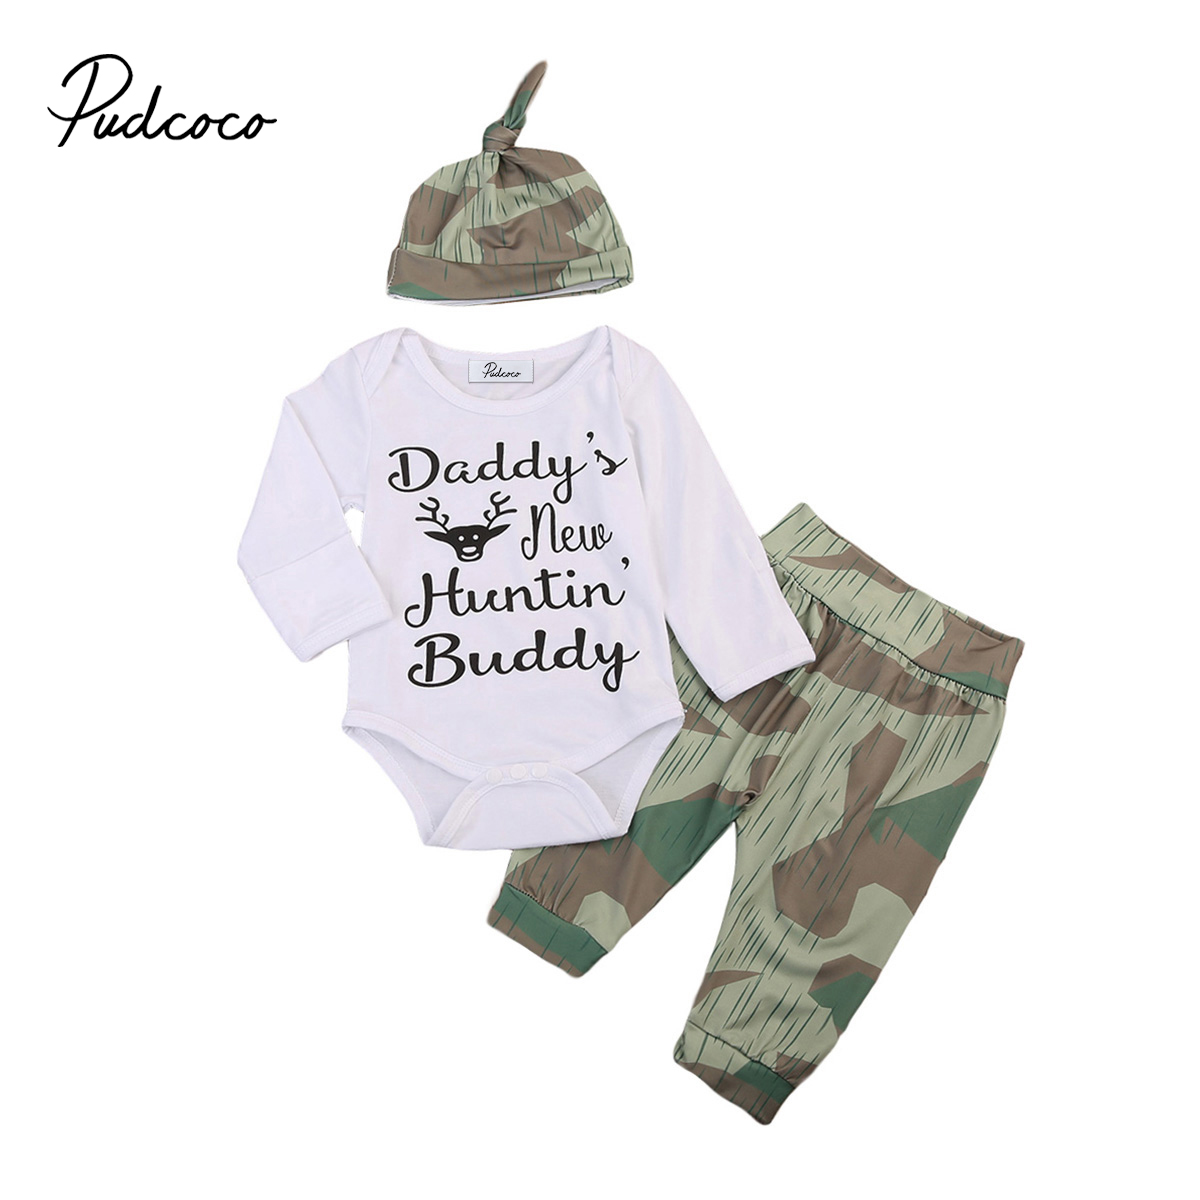 Pudcoco 3pcs Fashion sets Kids Baby Boy Clothes Long Sleeve White Romper Camouflage Pants Hat Outfits Cool Baby Boy Sets